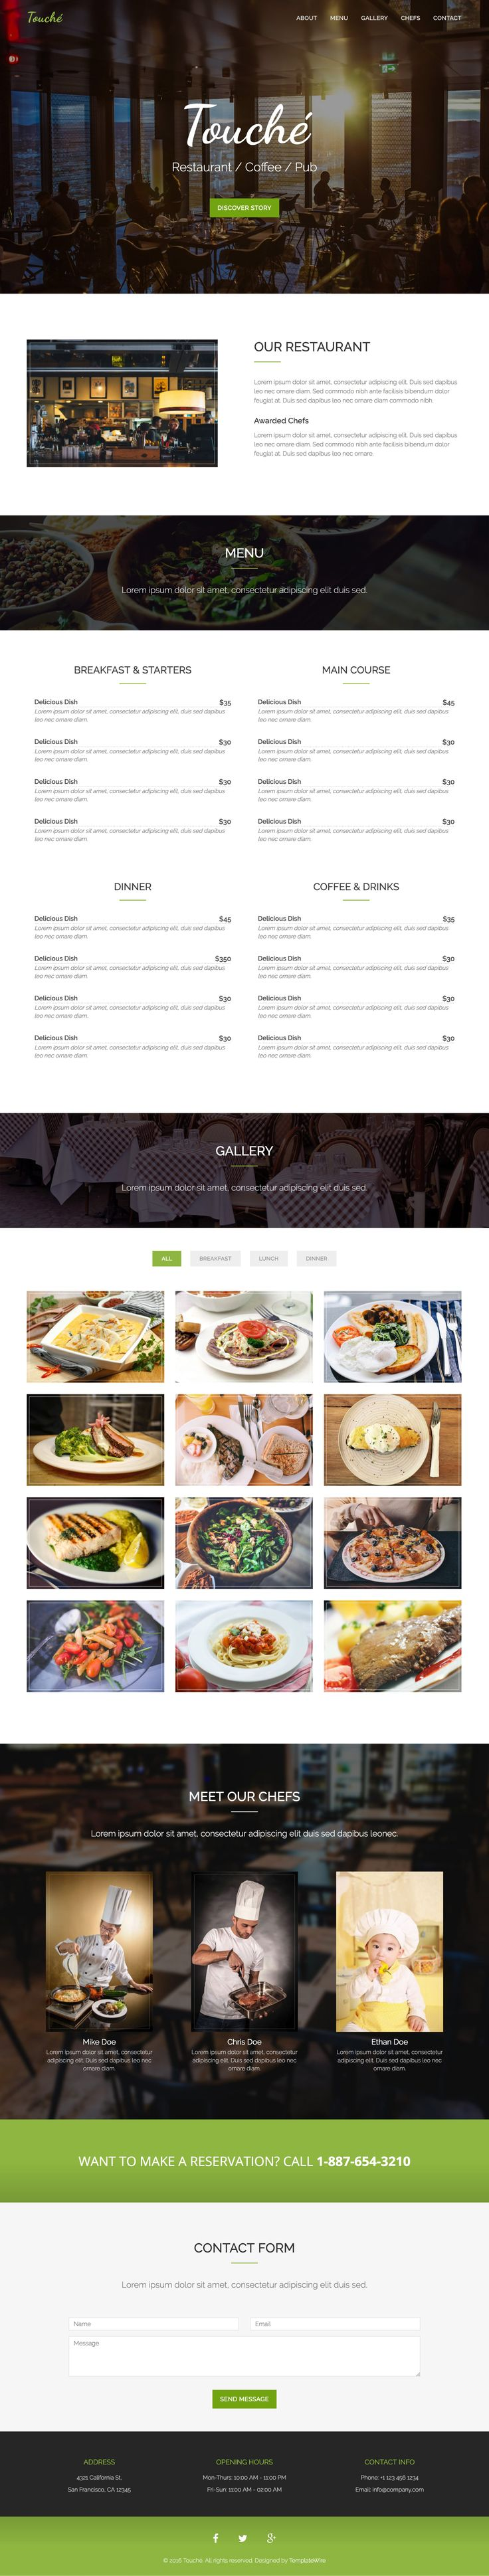 359 best images about one page website templates on pinterest